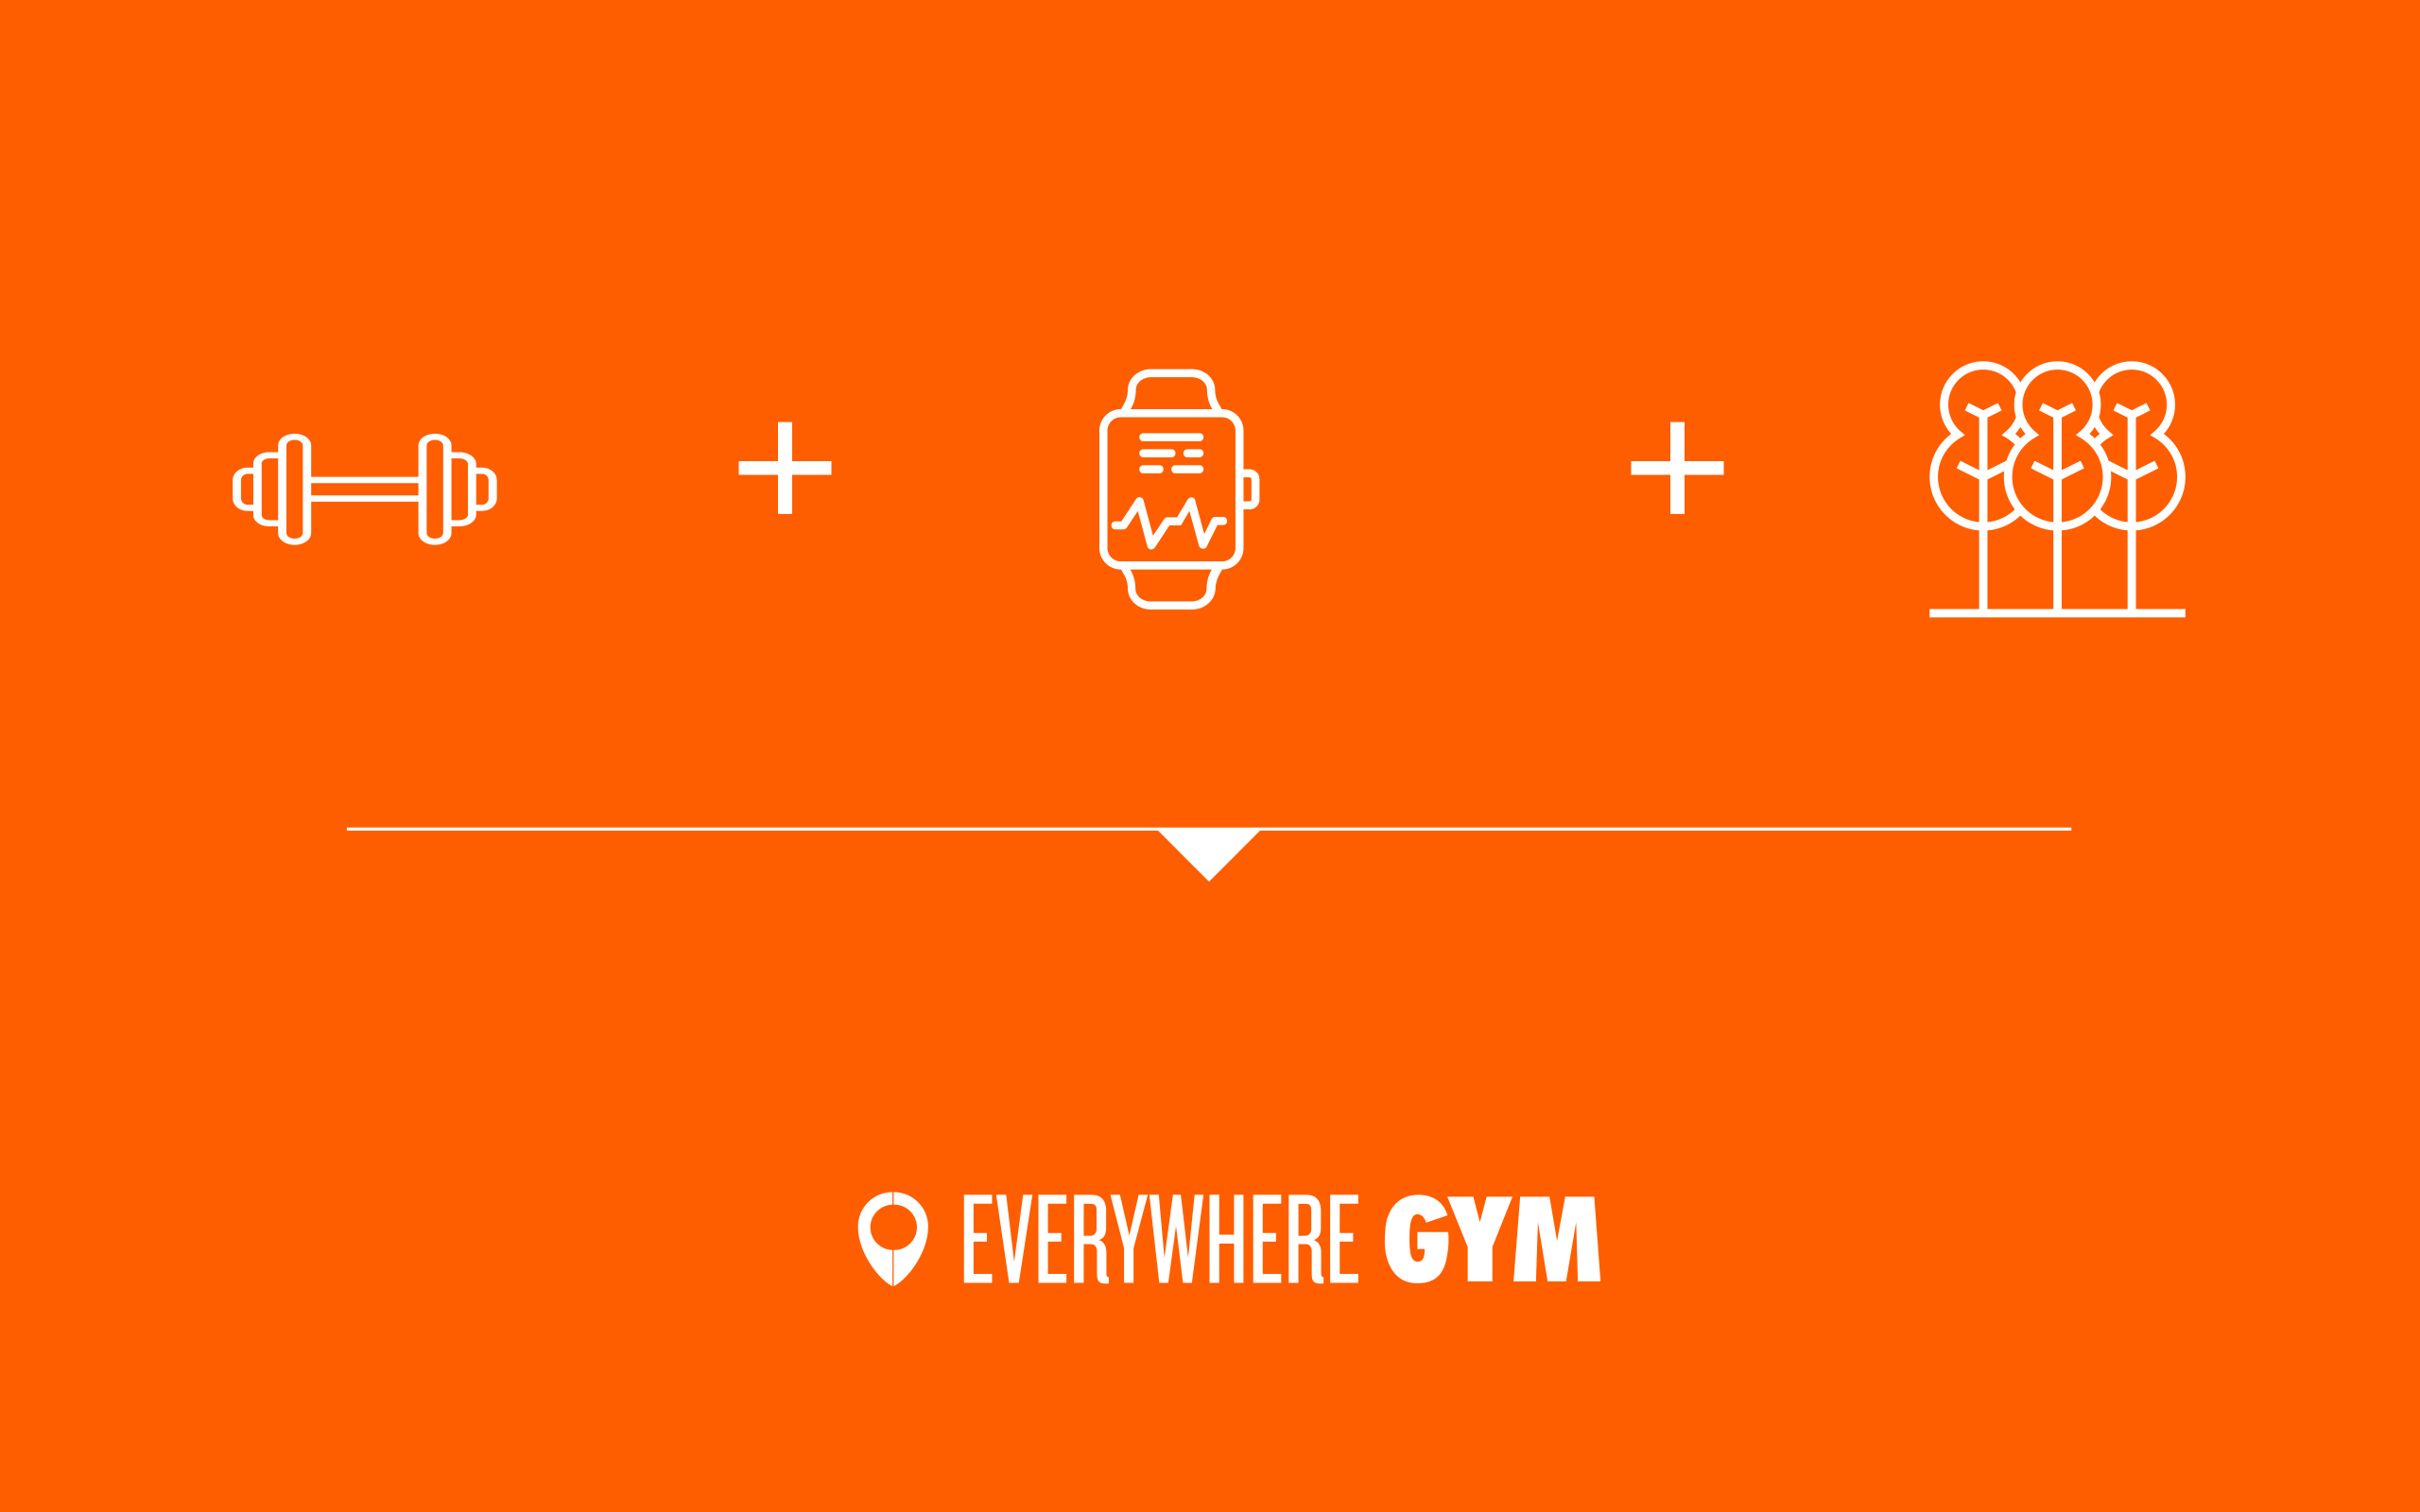 web_numarta_EVERYWHERE_GYM_1